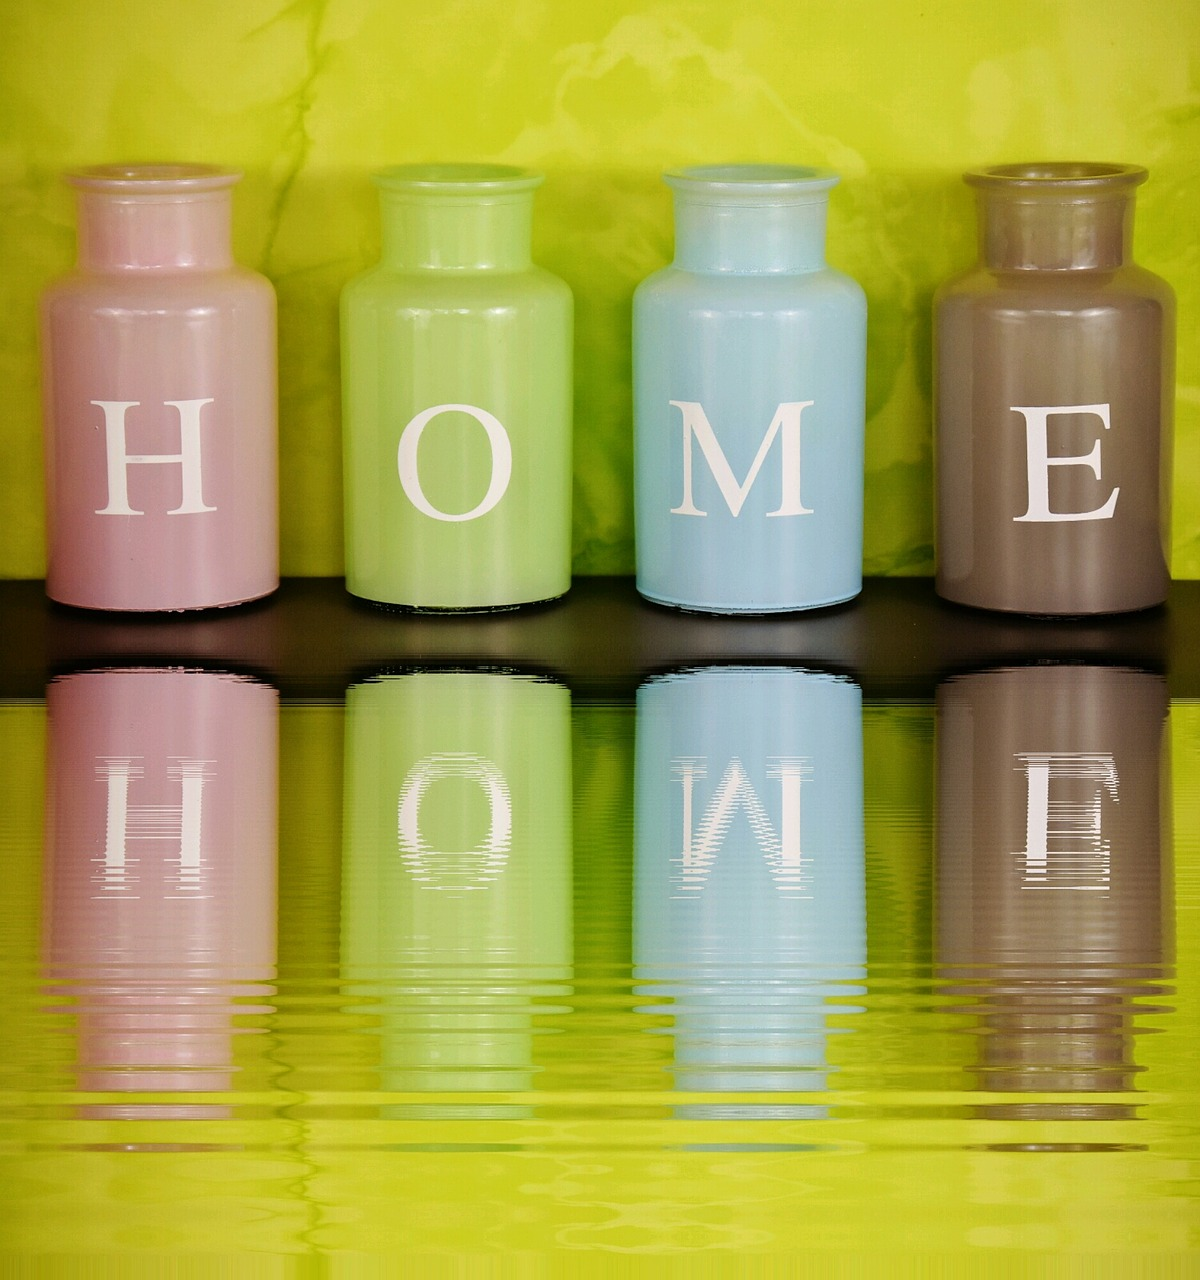 home at home vases free photo